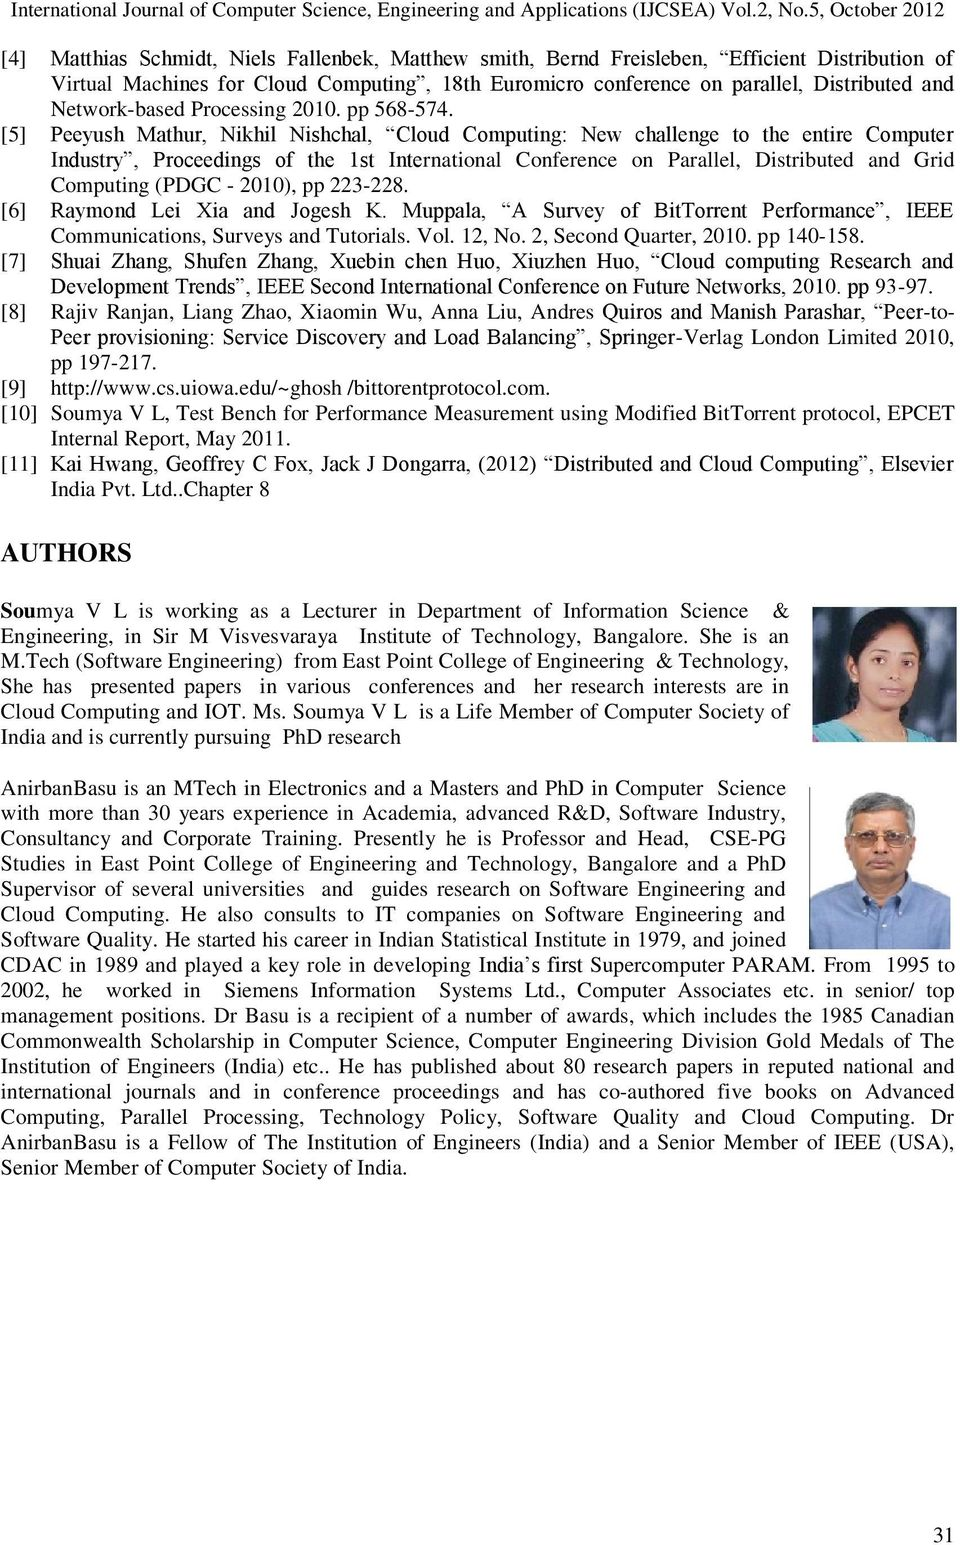 [5] Peeyush Mathur, Nikhil Nishchal, Cloud Computing: New challenge to the entire Computer Industry, Proceedings of the 1st International Conference on Parallel, Distributed and Grid Computing (PDGC